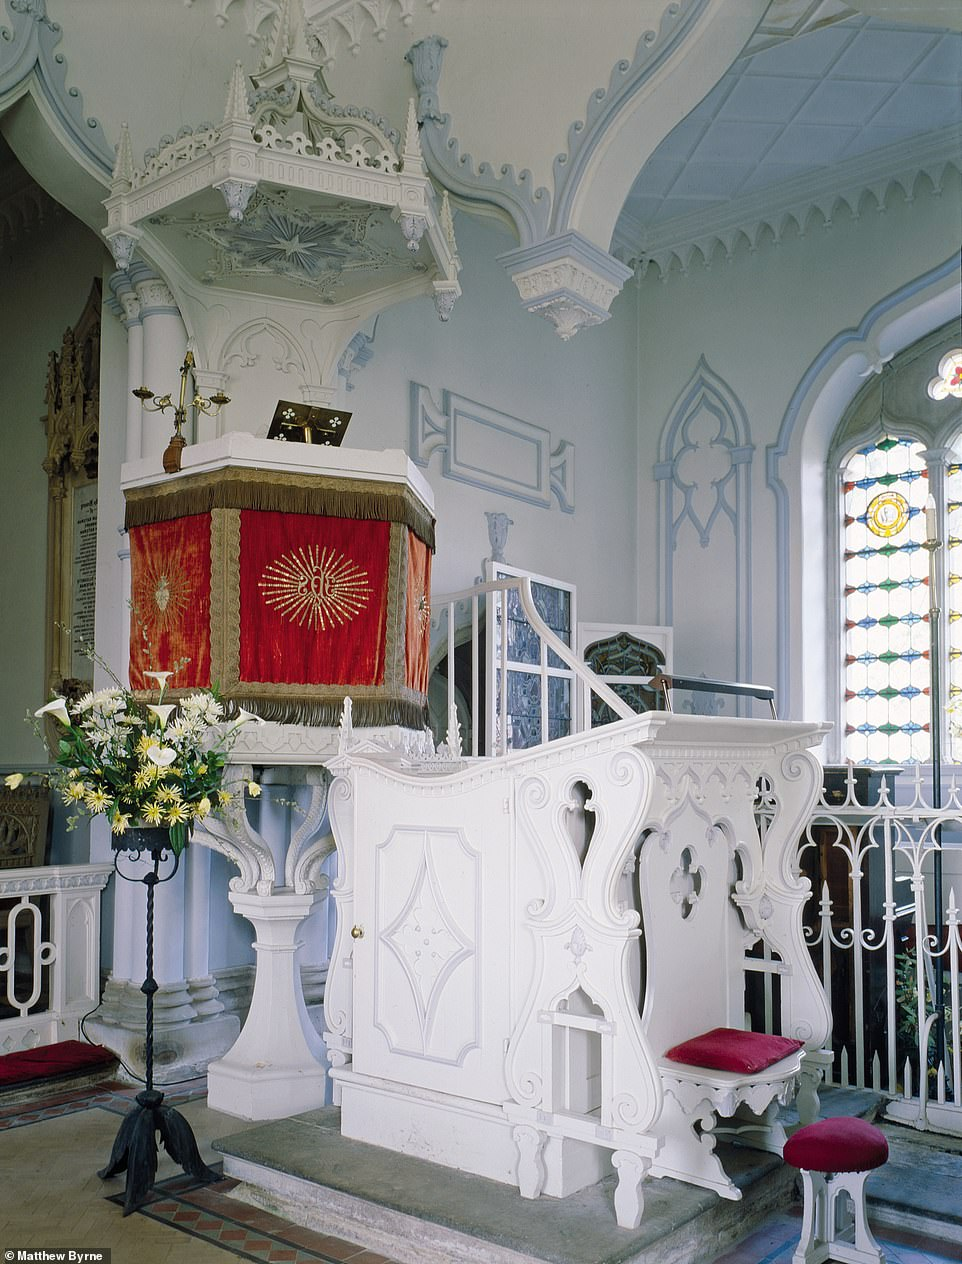 """ST JOHN THE EVANGELIST CHURCH, SHOBDON, HEREFORDSHIRE: 'The whole interior including the pulpit is a unique 1752 """"Rococo- Gothic"""" creation of Richard Bateman, a friend of Horace Walpole,' says Matthew. 'The lower deck for the parish clerk is no more than a little chair. The velvet hangings are original'"""